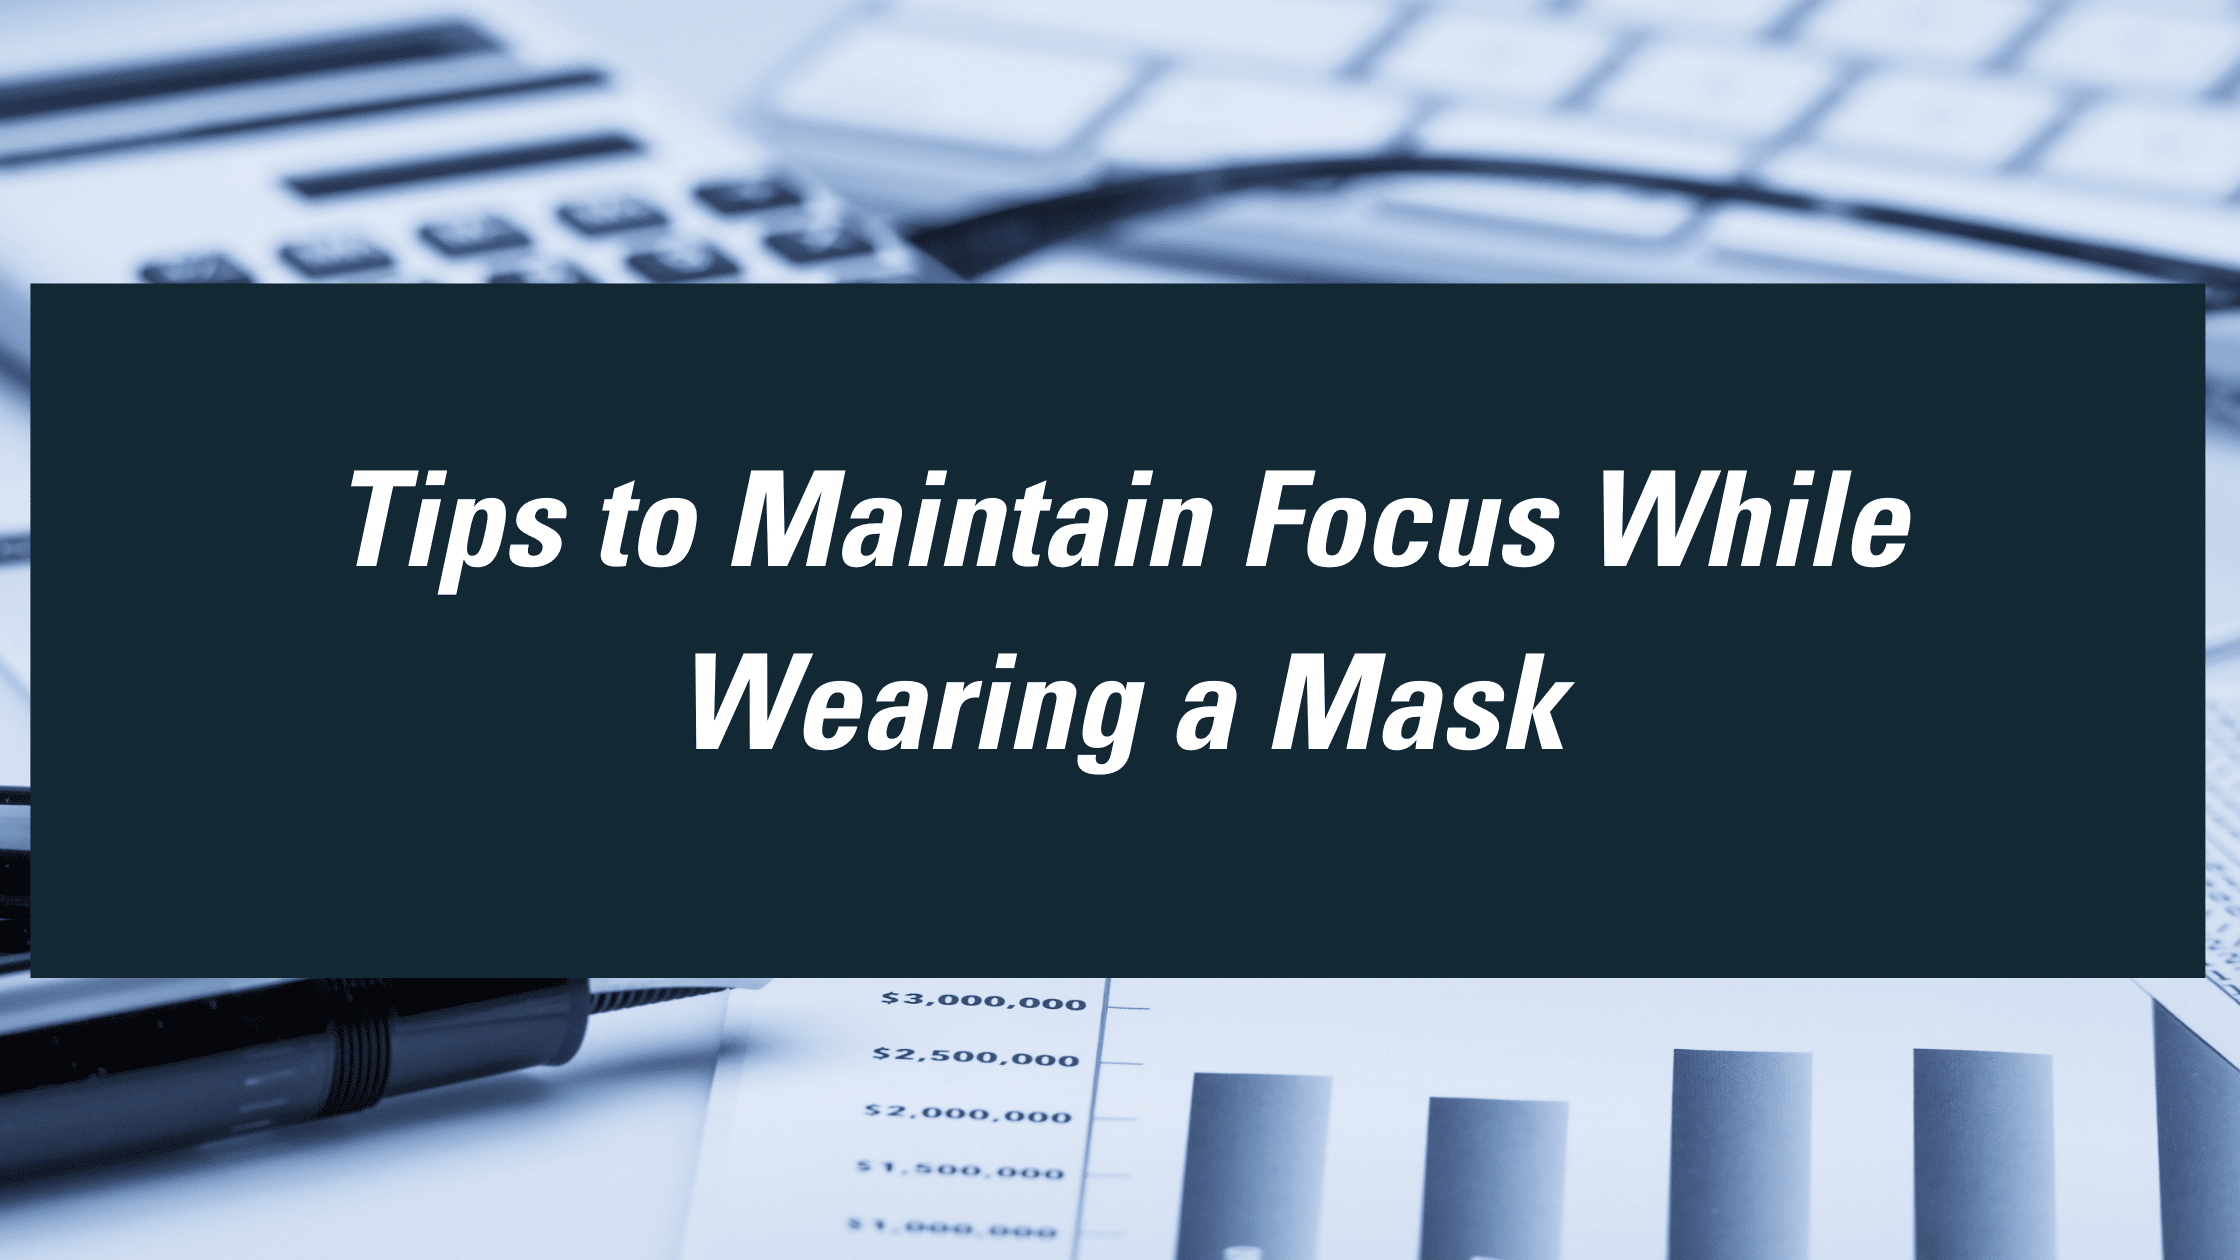 Tips to Maintain Focus While Wearing a Mask